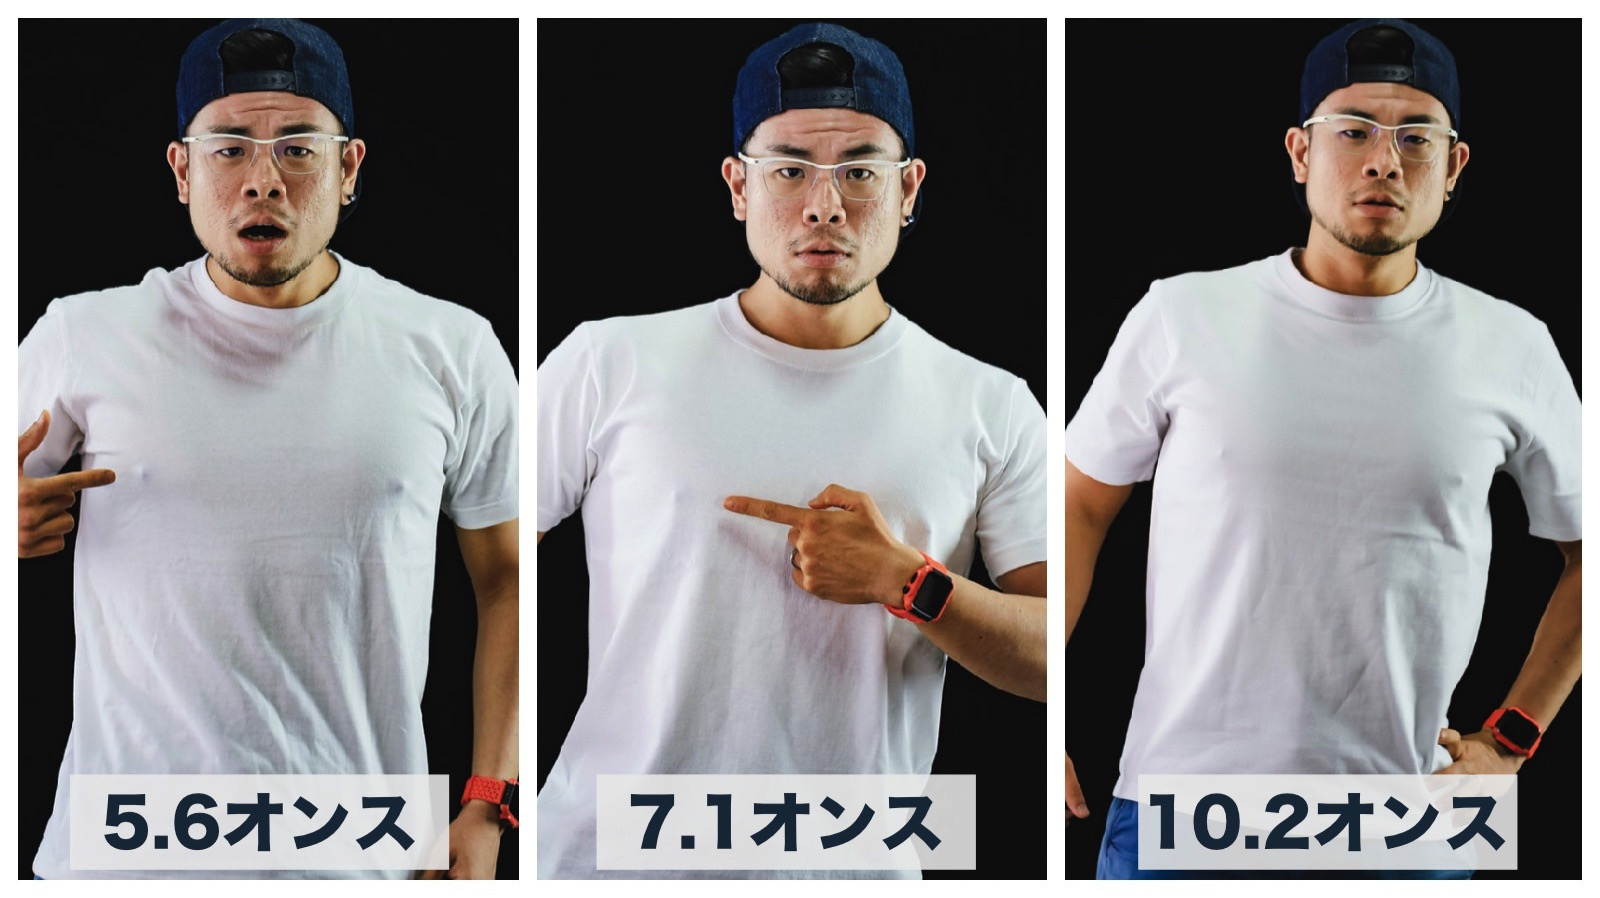 Three Types of White Tshirts Compared 1 2